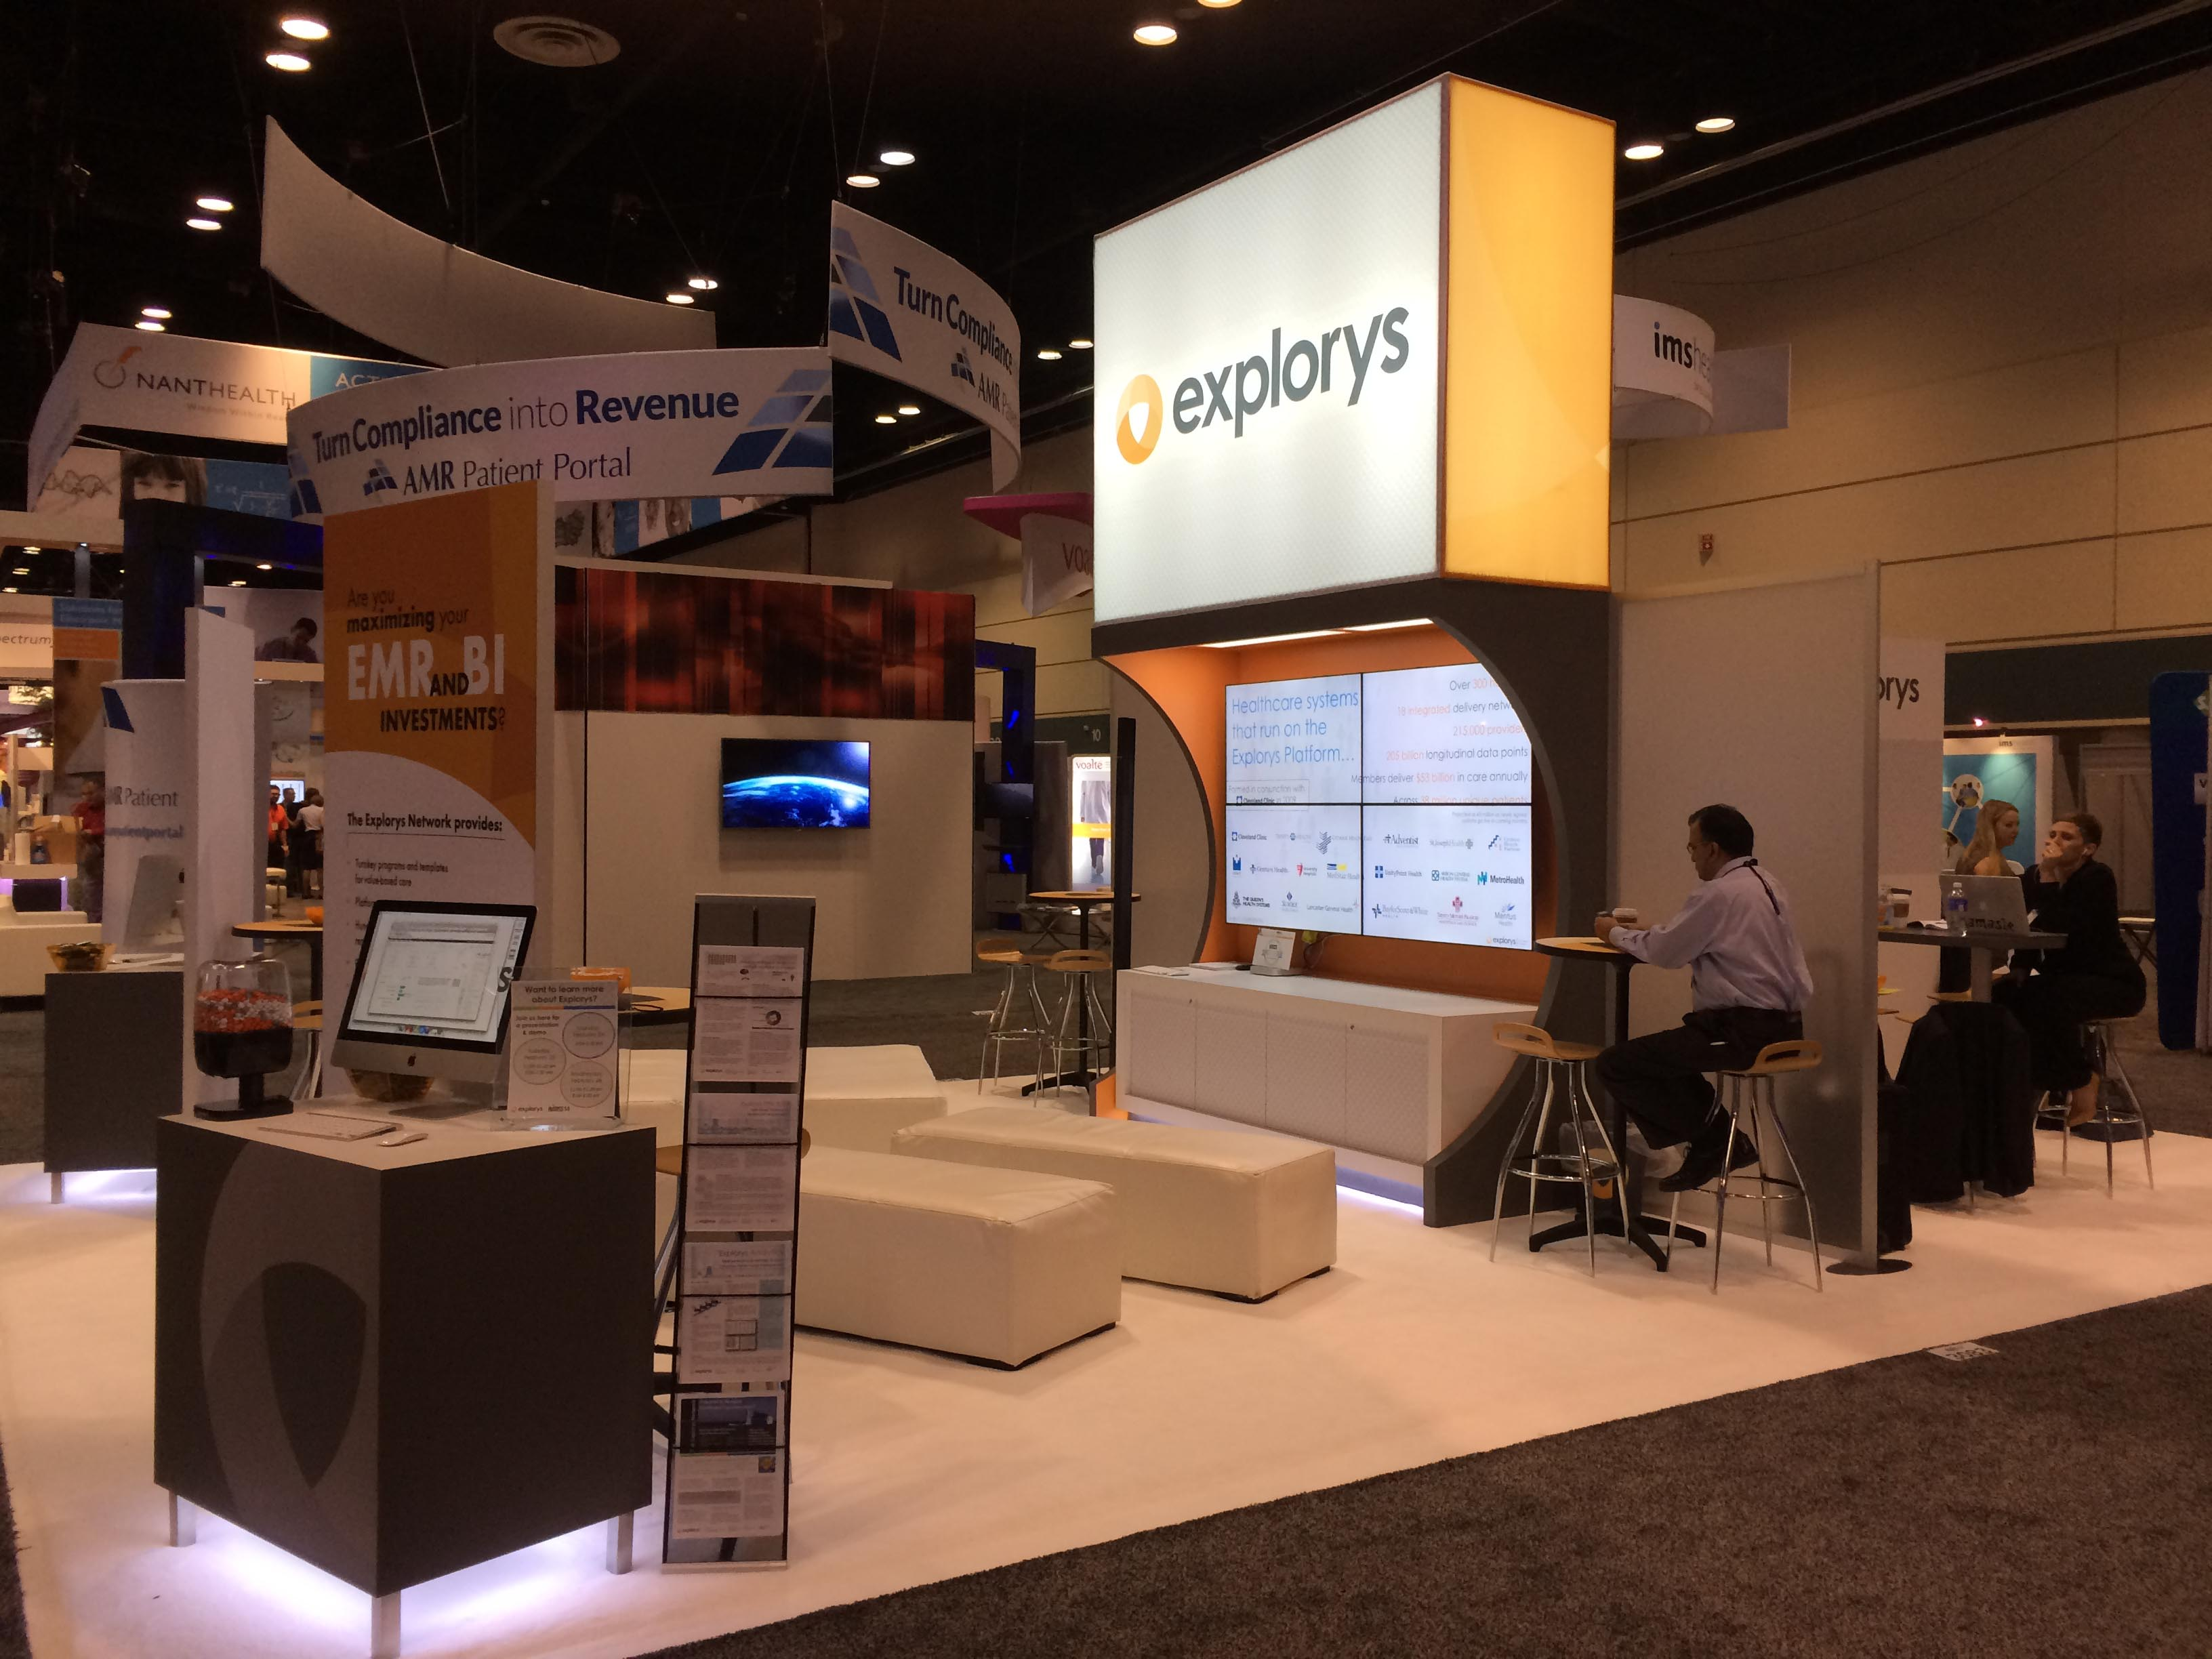 Explorys Trade show booth